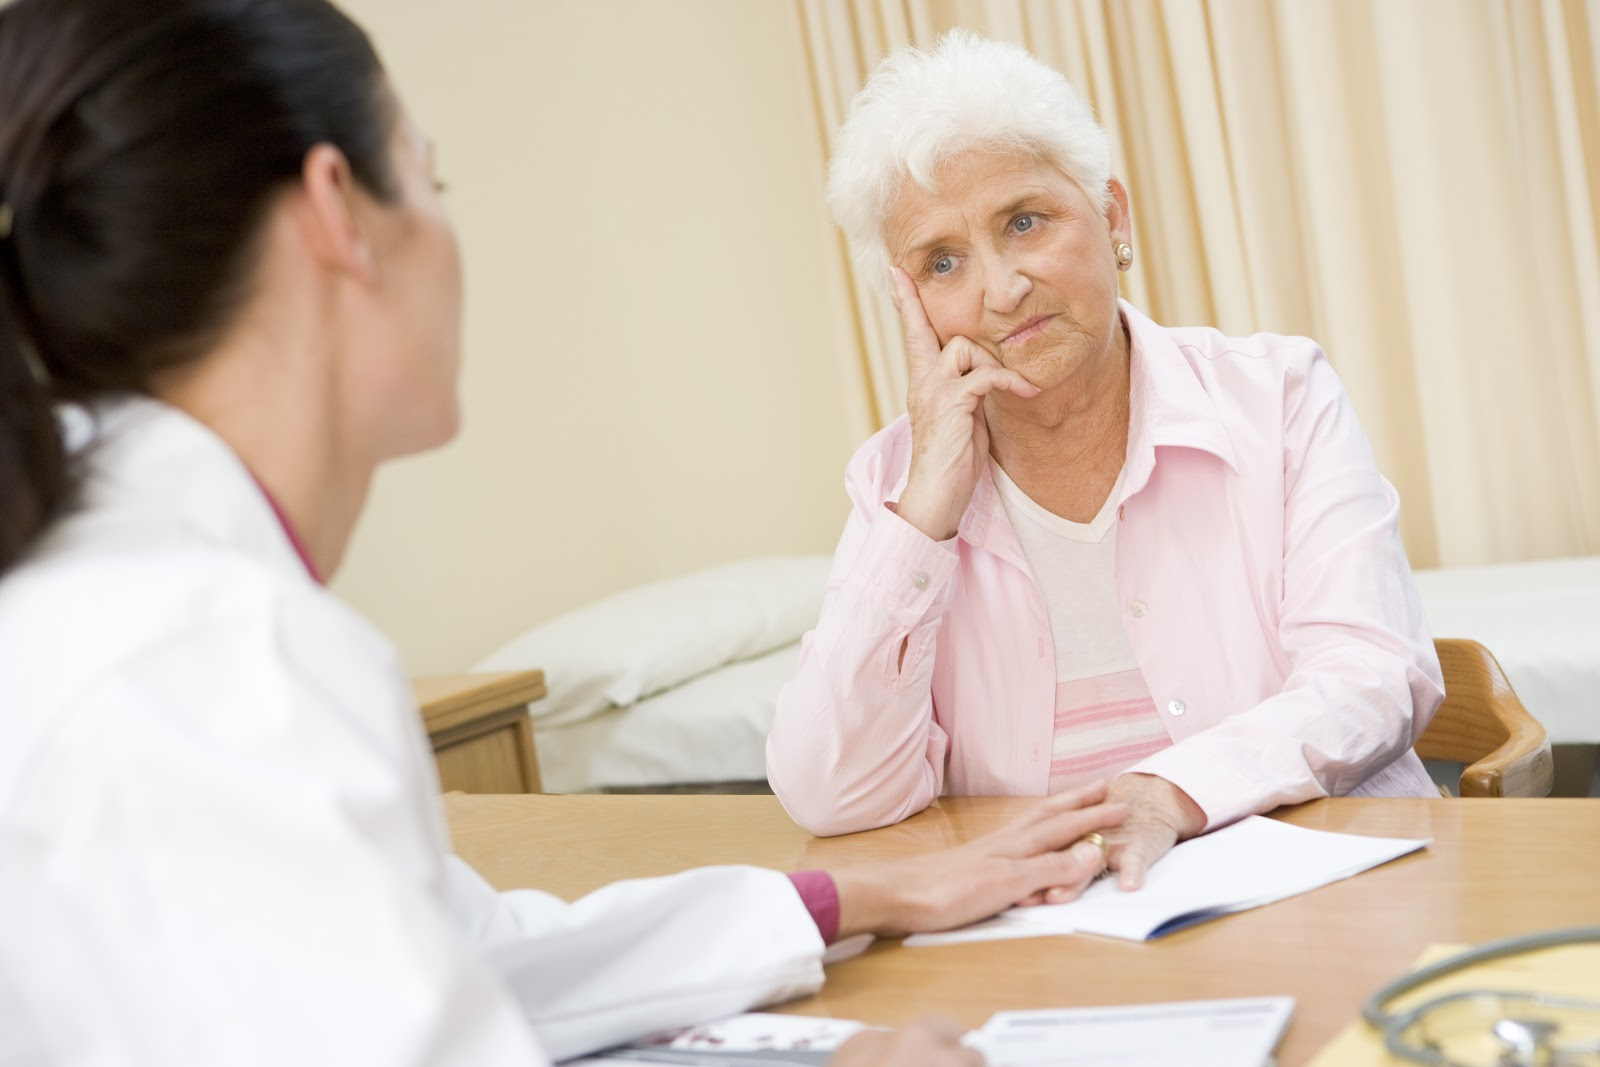 An elderly woman talking to a therapist about her body image